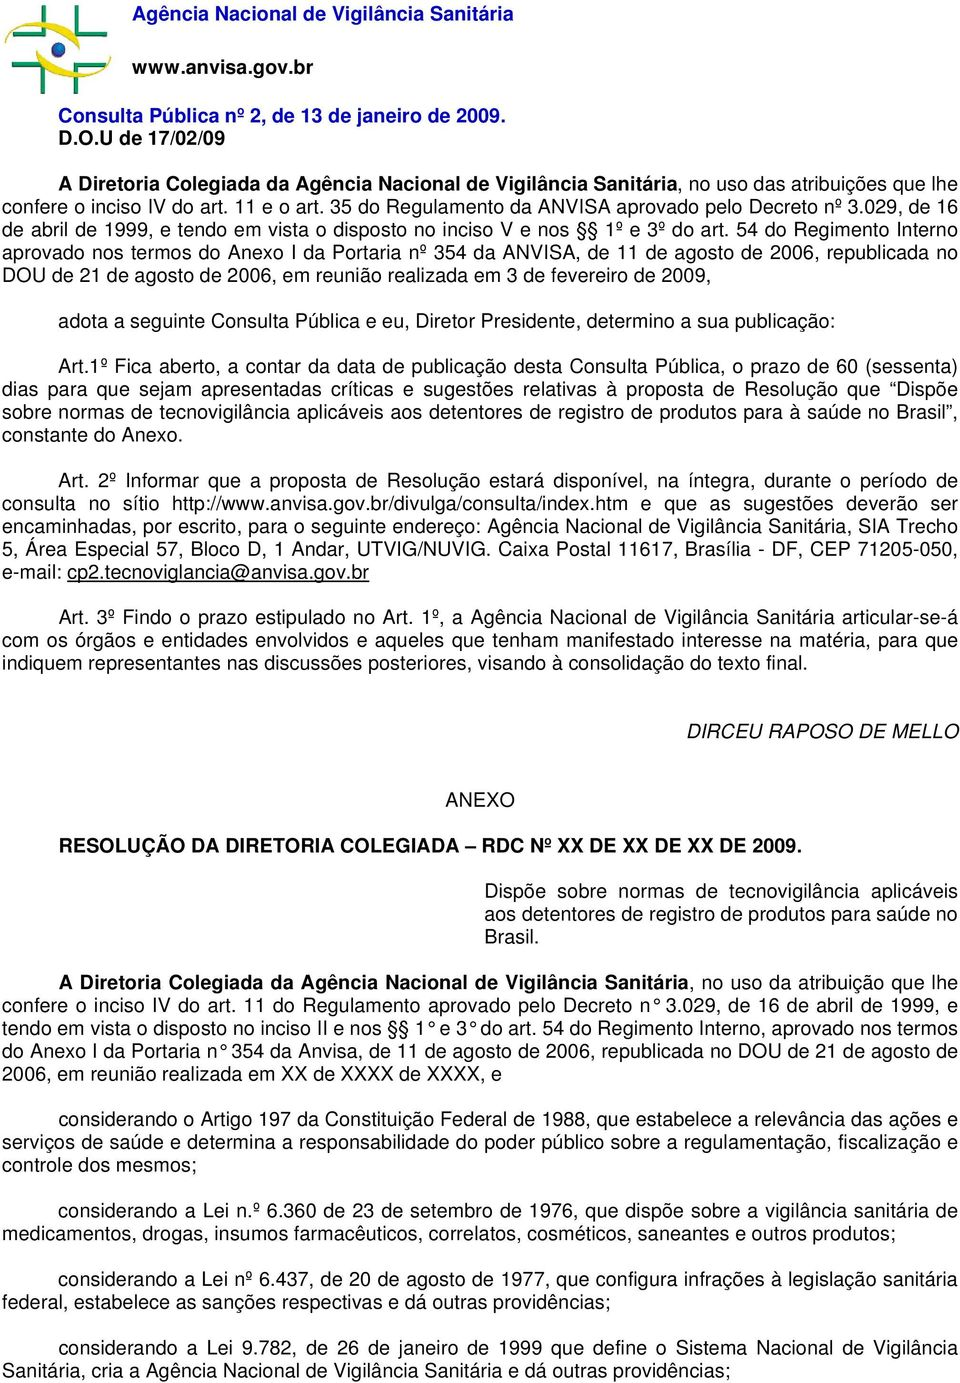 35 do Regulamento da ANVISA aprovado pelo Decreto nº 3.029, de 16 de abril de 1999, e tendo em vista o disposto no inciso V e nos 1º e 3º do art.